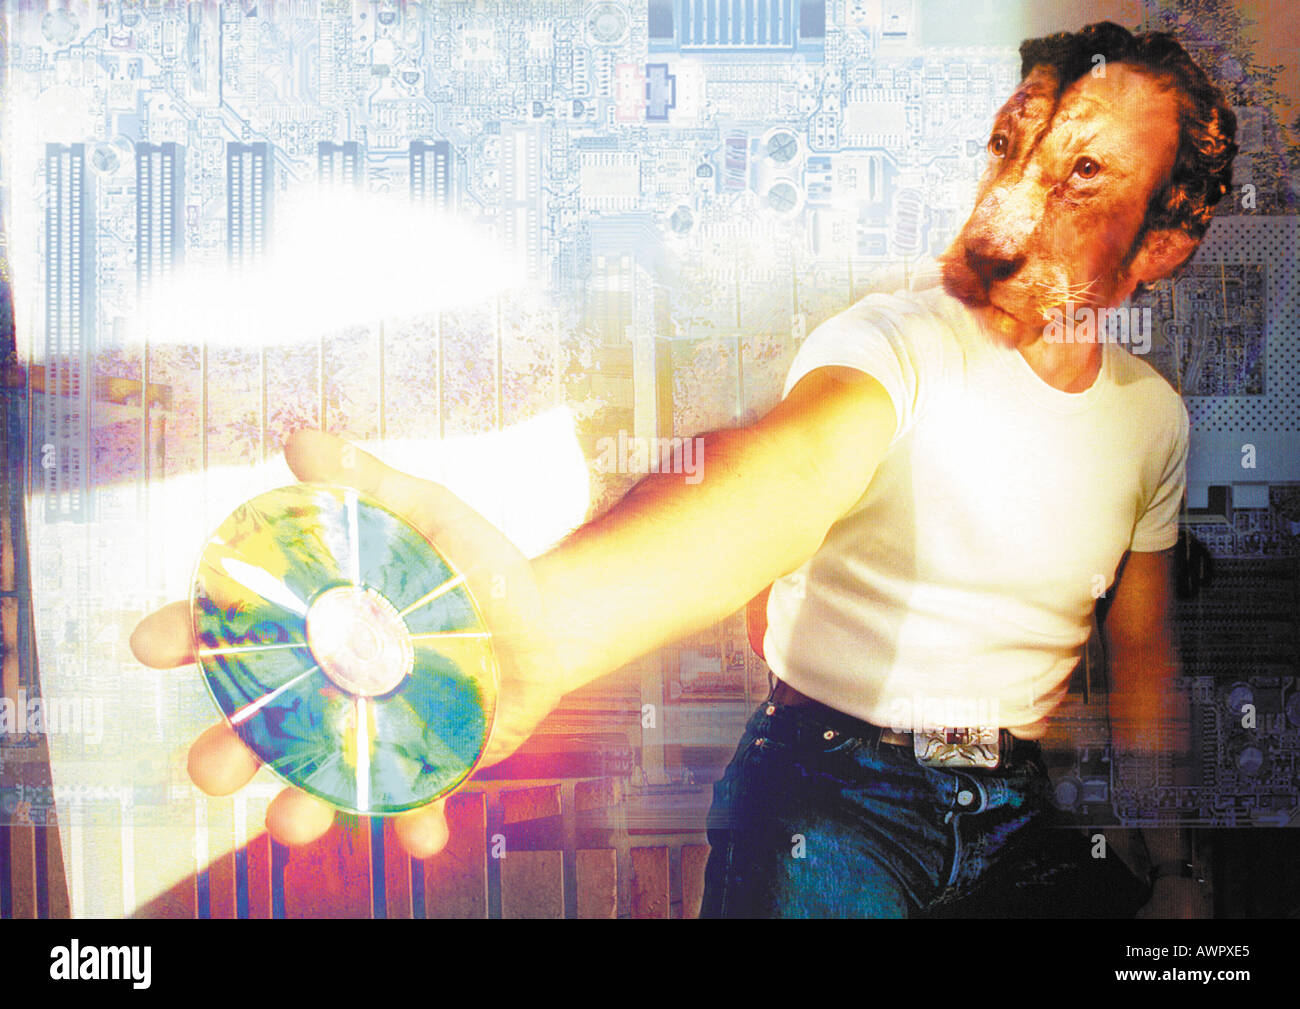 Man with animal head holding CD, digital composite. Stock Photo